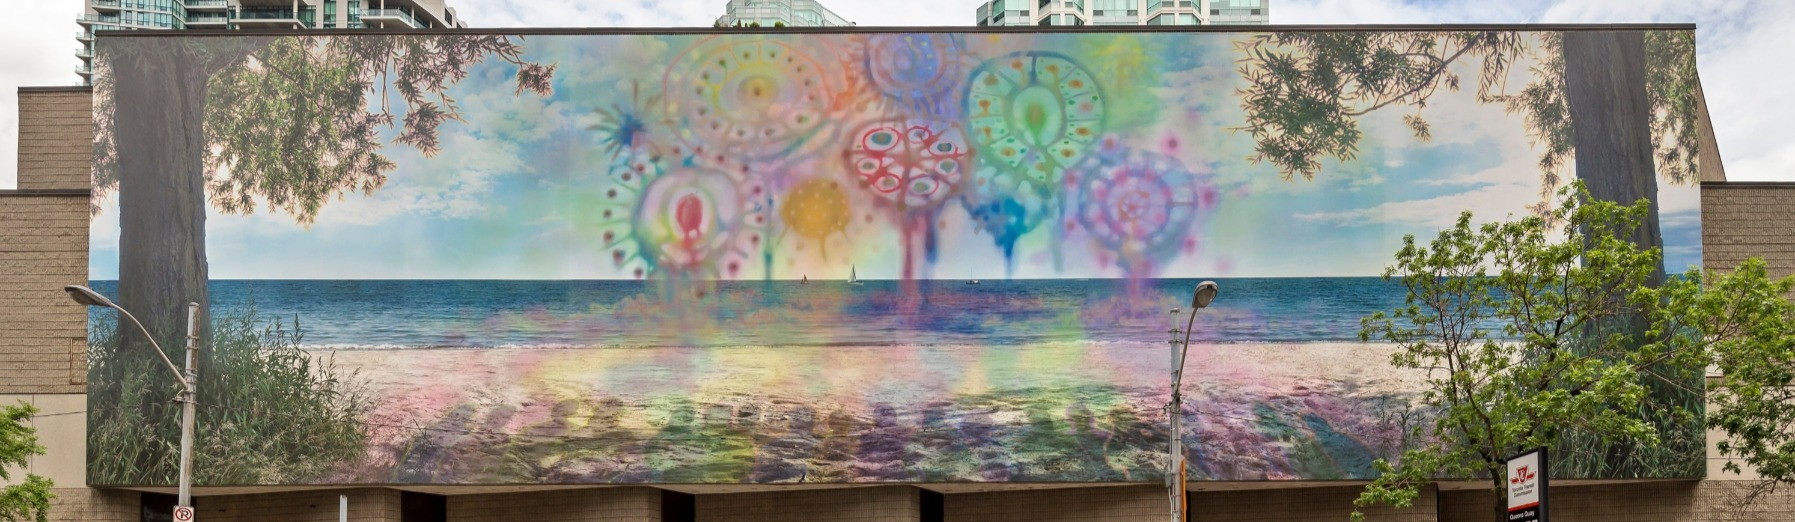 Mural outside Westin Harbour hotel